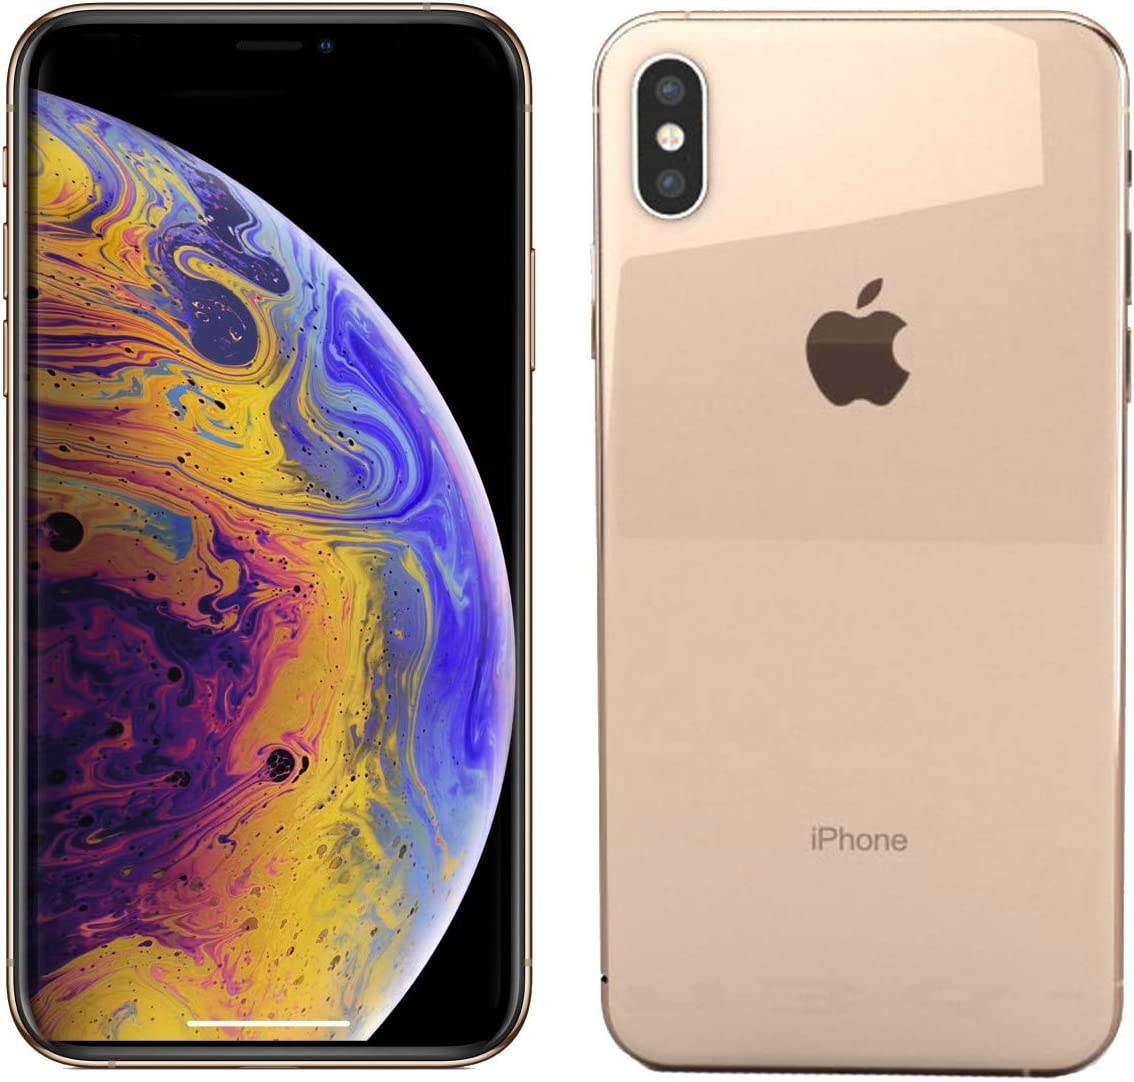 Apple iPhone Xs Max, 512GB, Gold - For AT&T (Renewed)